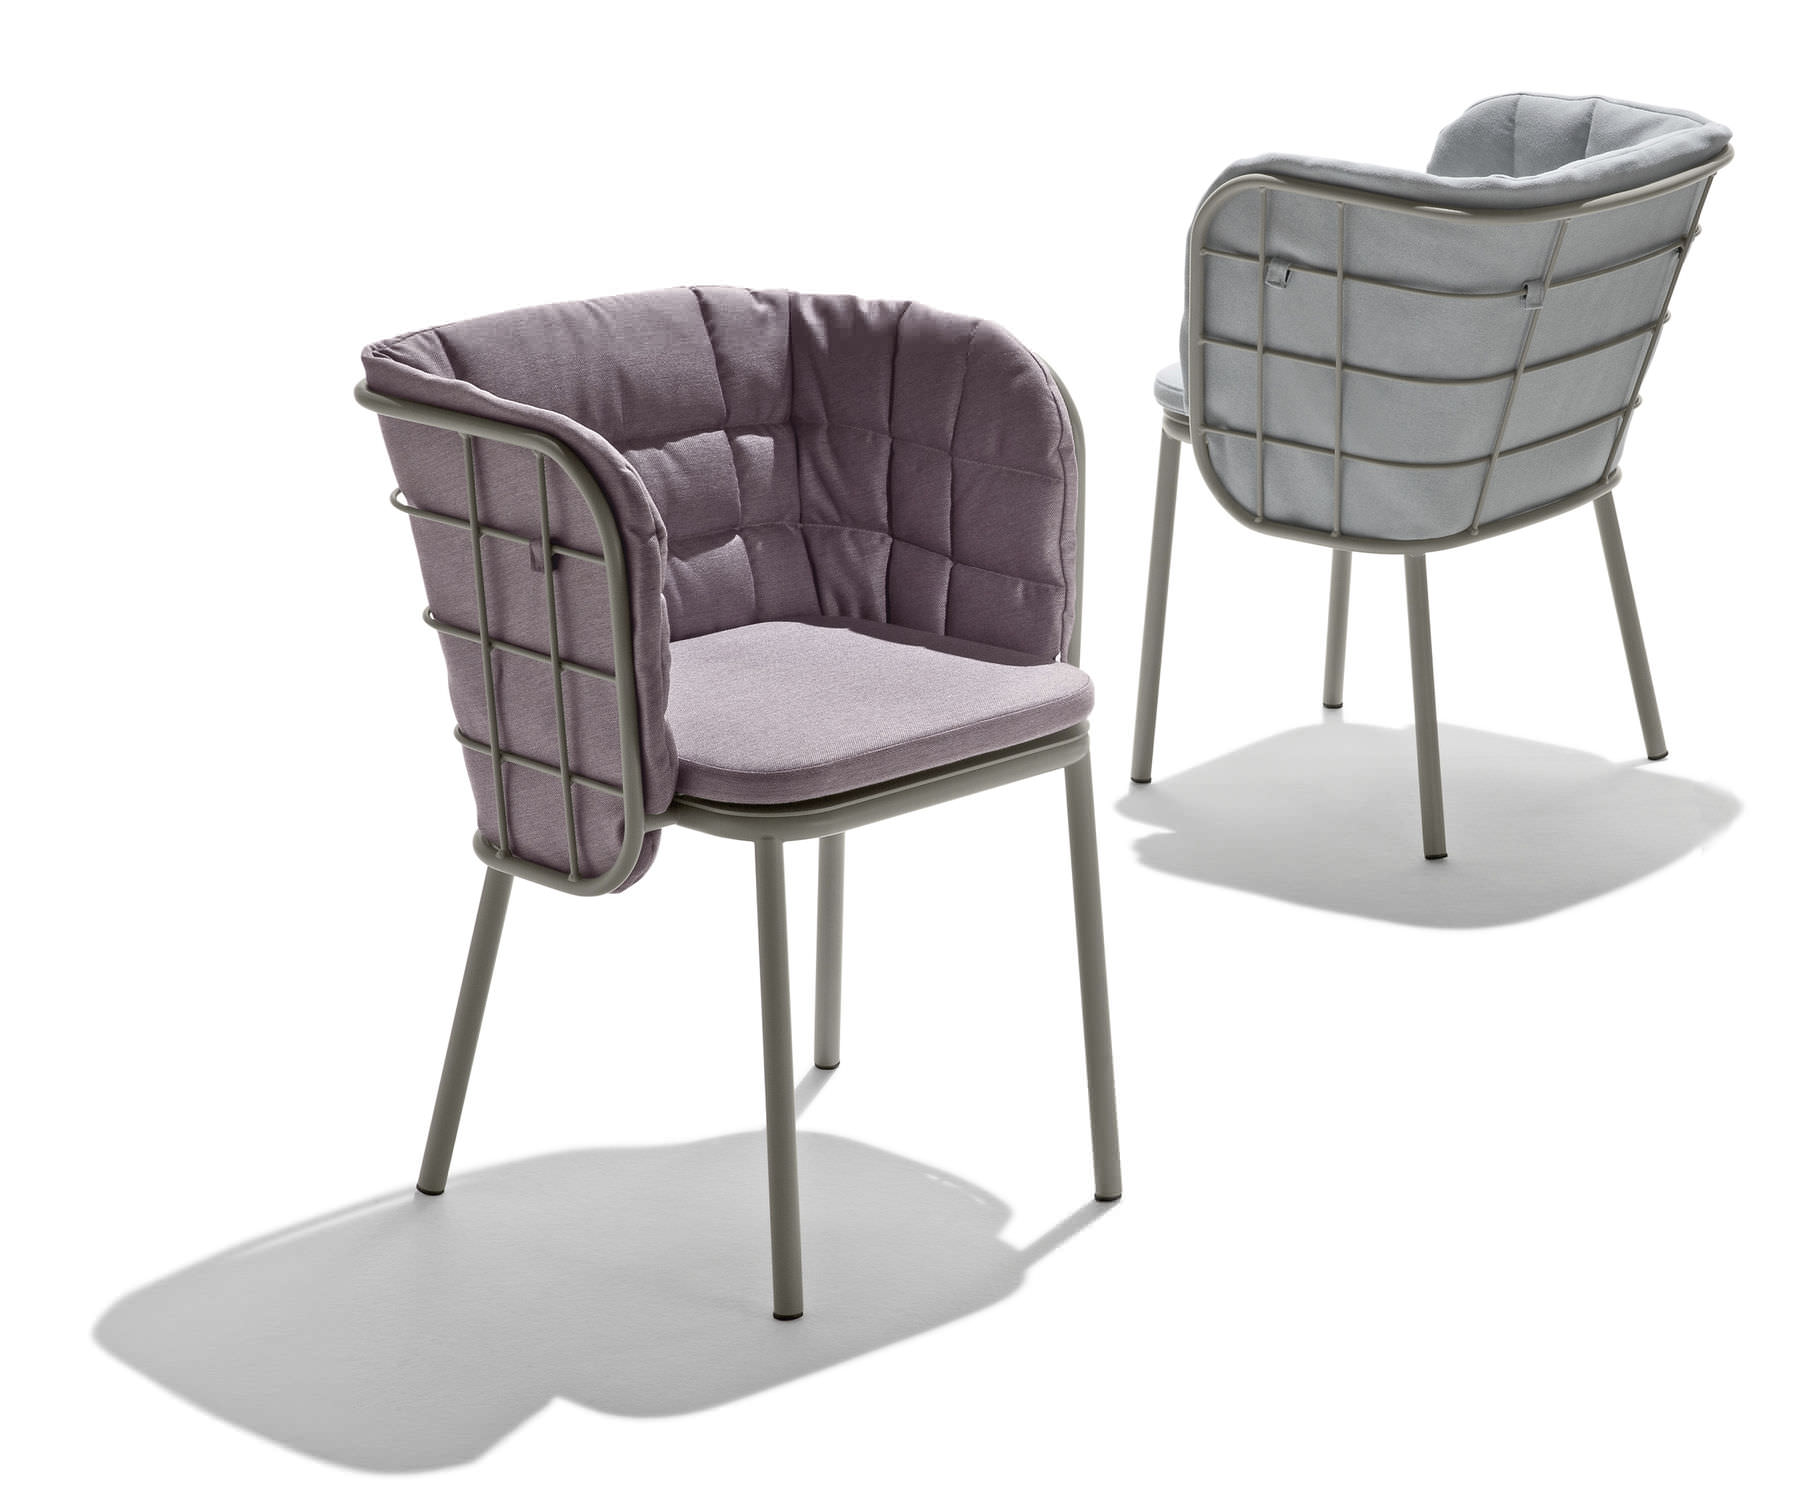 contemporary chair  metal  fabric  upholstered  jujube sp b by  -  contemporary chair  metal  fabric  upholstered jujube sp b by pbdesign studio chairs